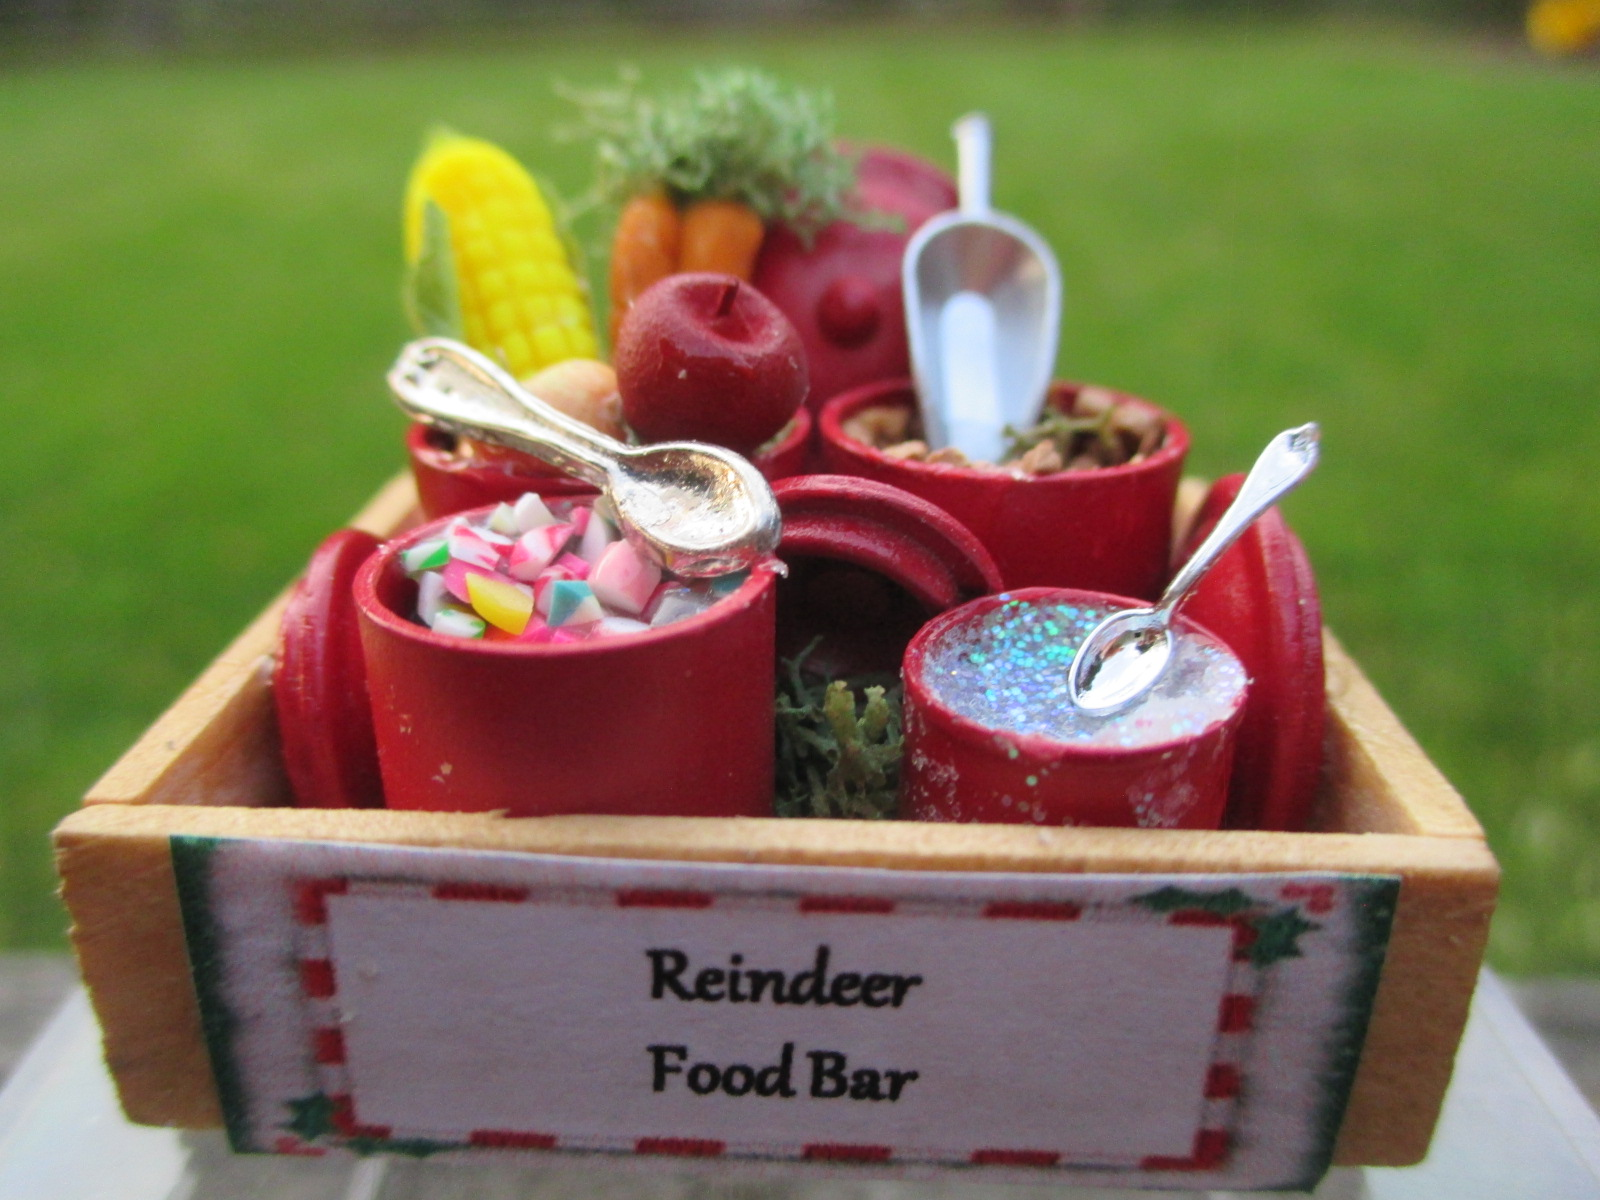 Christmas Reindeer Food Bar in Wooden Crate ~ Carrots